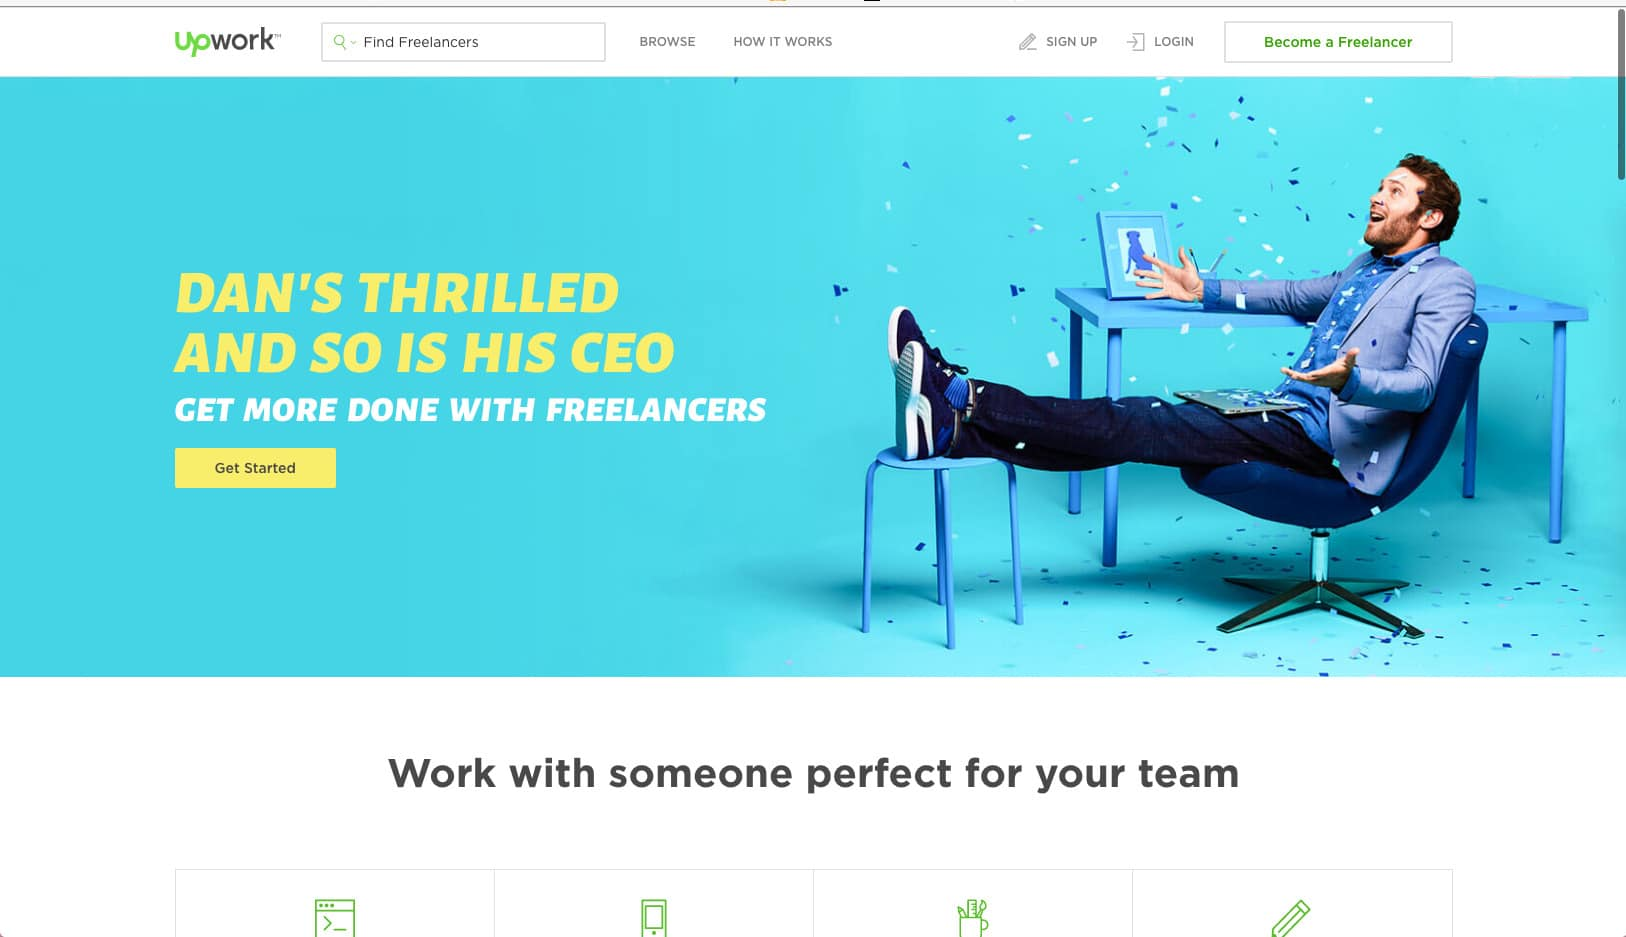 Advertising by Upwork from UIGarage